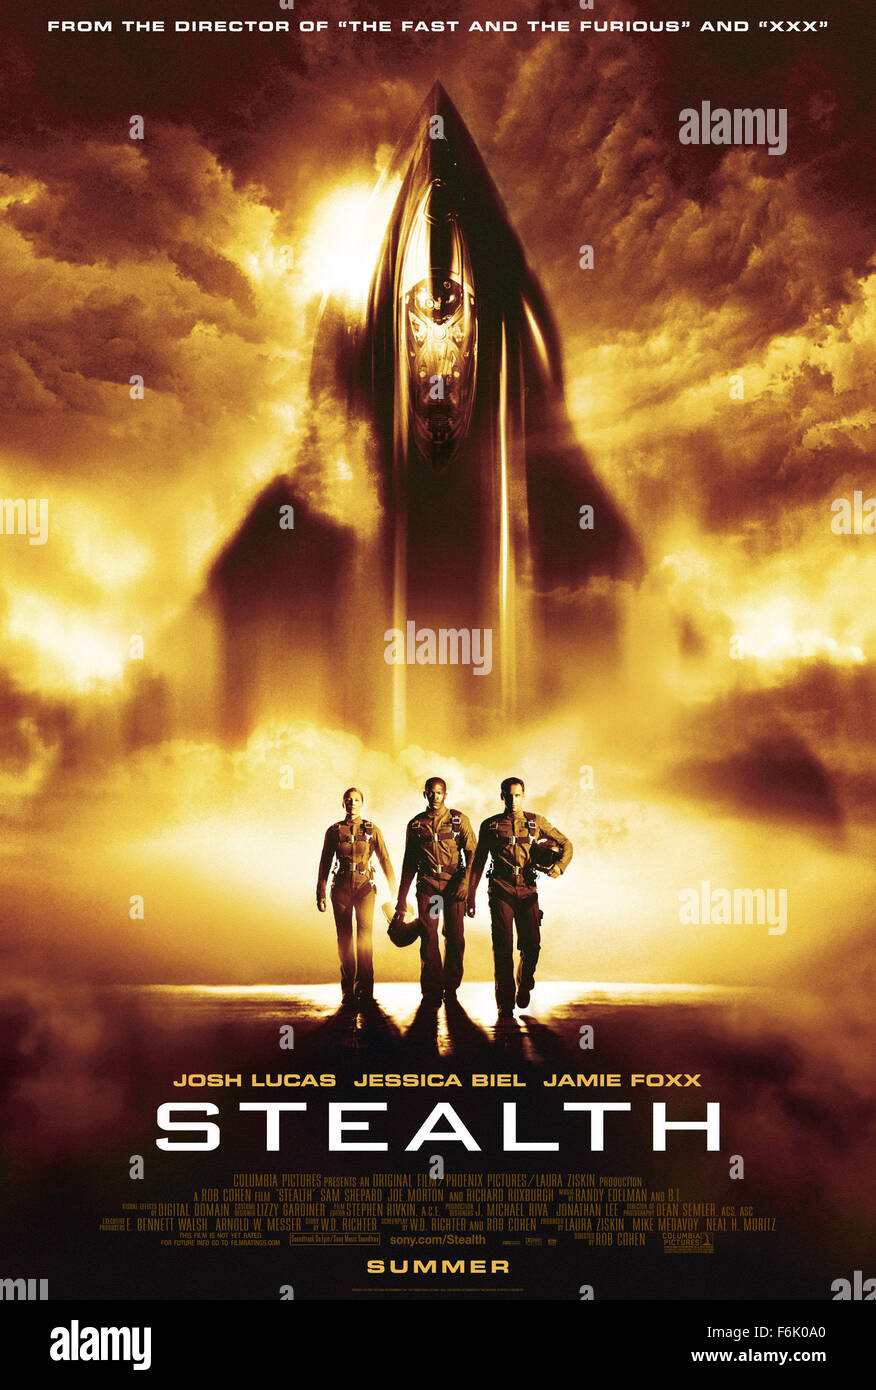 RELEASE DATE: July 29, 2005  MOVIE TITLE: Stealth  STUDIO: Columbia